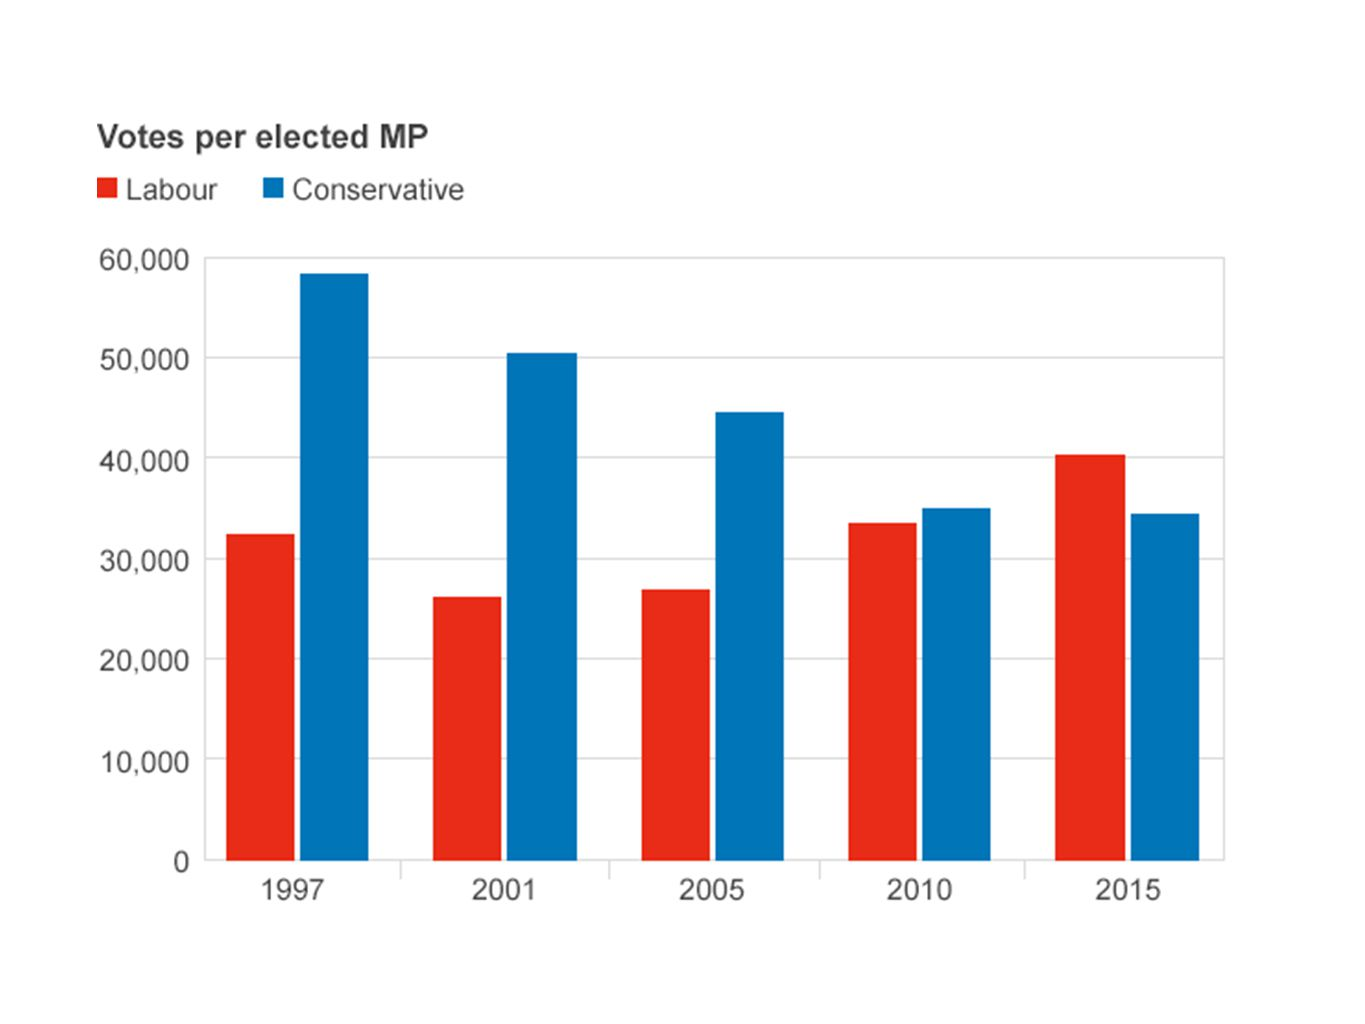 First time in 20 years that the # of votes cast per Labour MP exceeded that of the # per Conservative MP